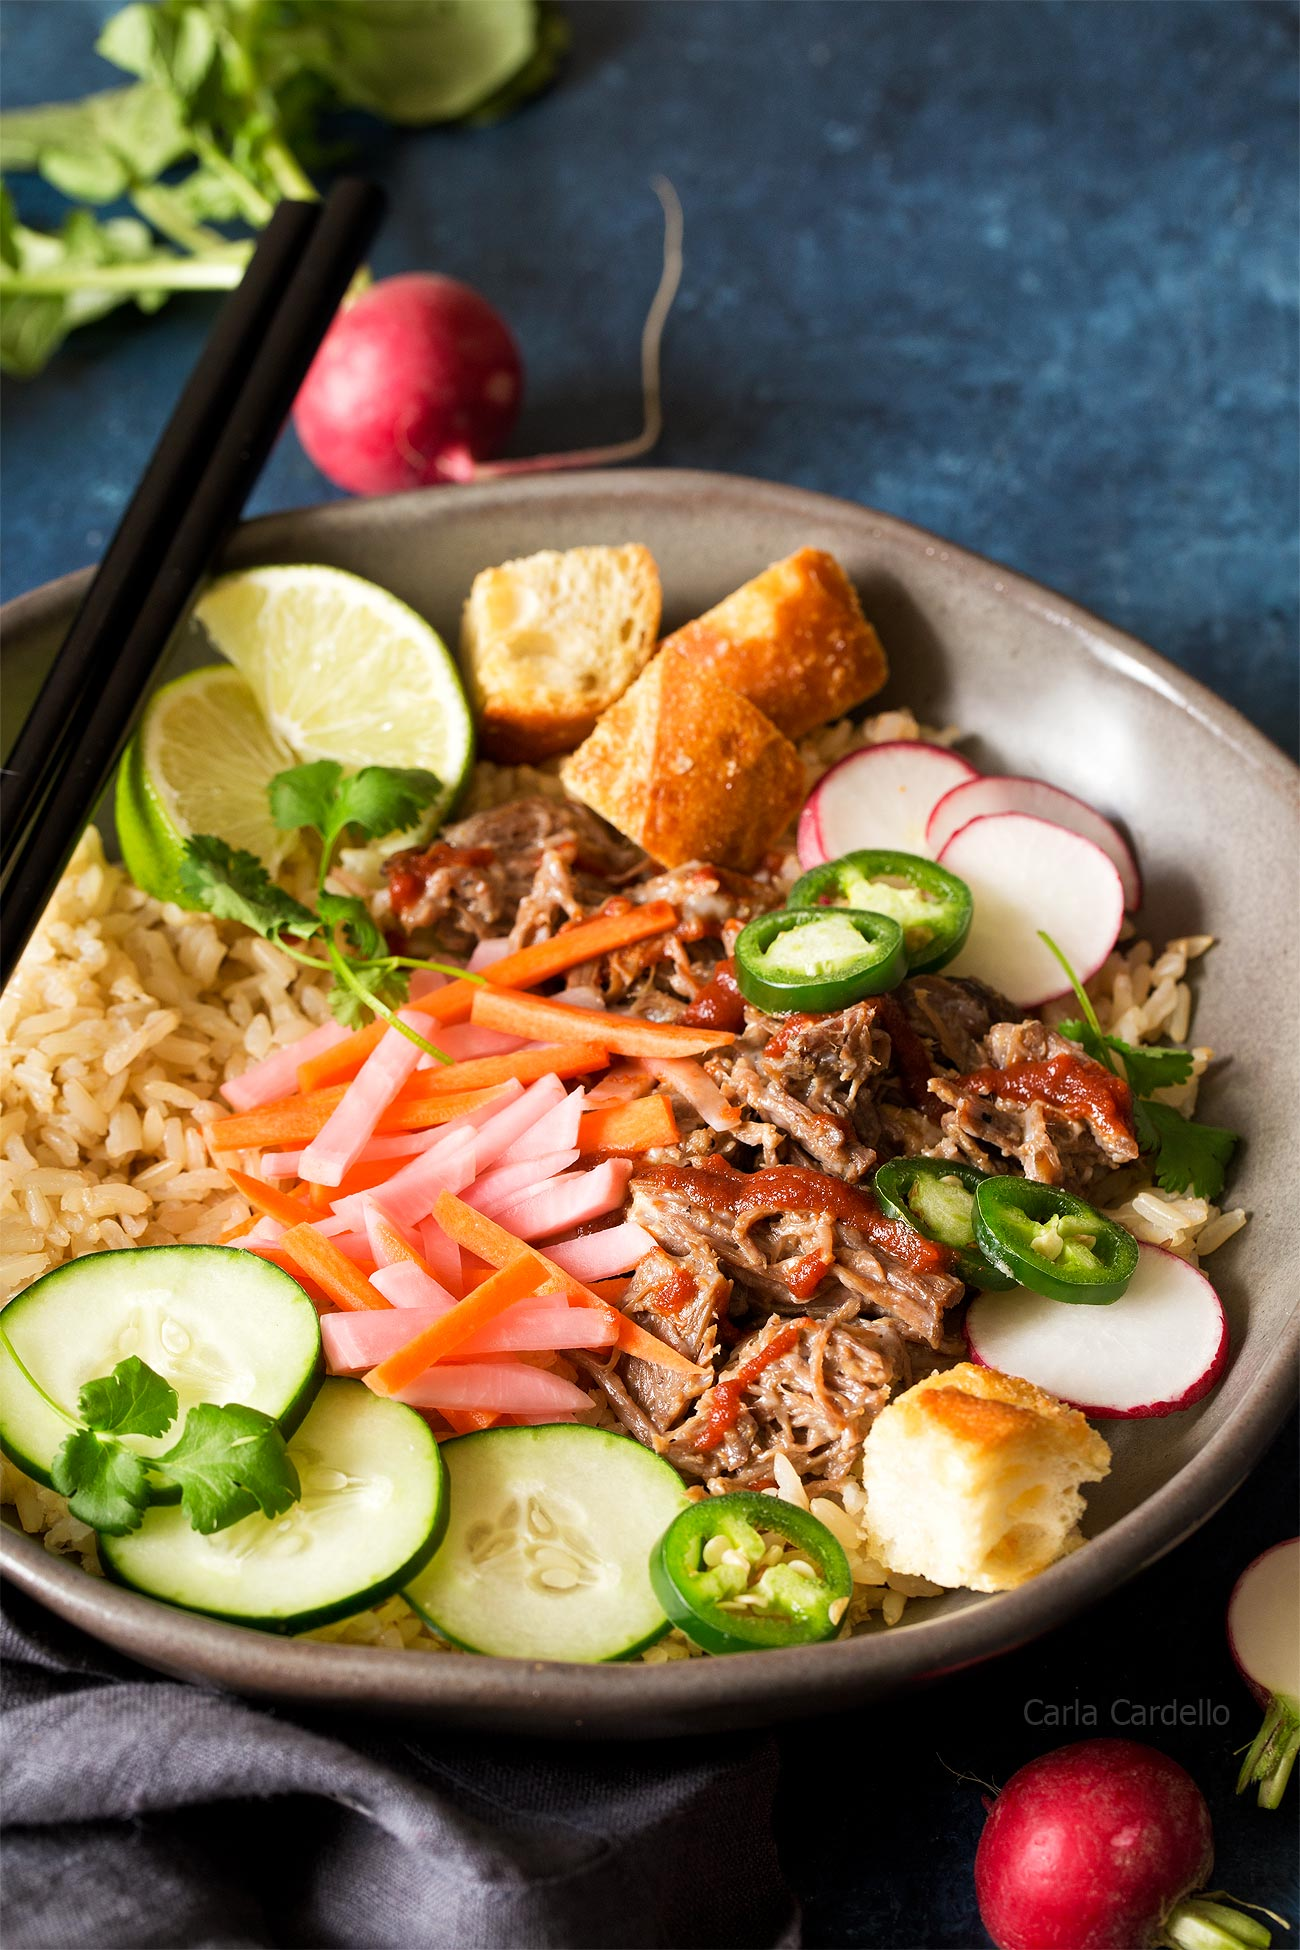 Slow Cooker Banh Mi Rice Bowls with shredded pork, pickled carrots, pickled radishes, and baguette croutons